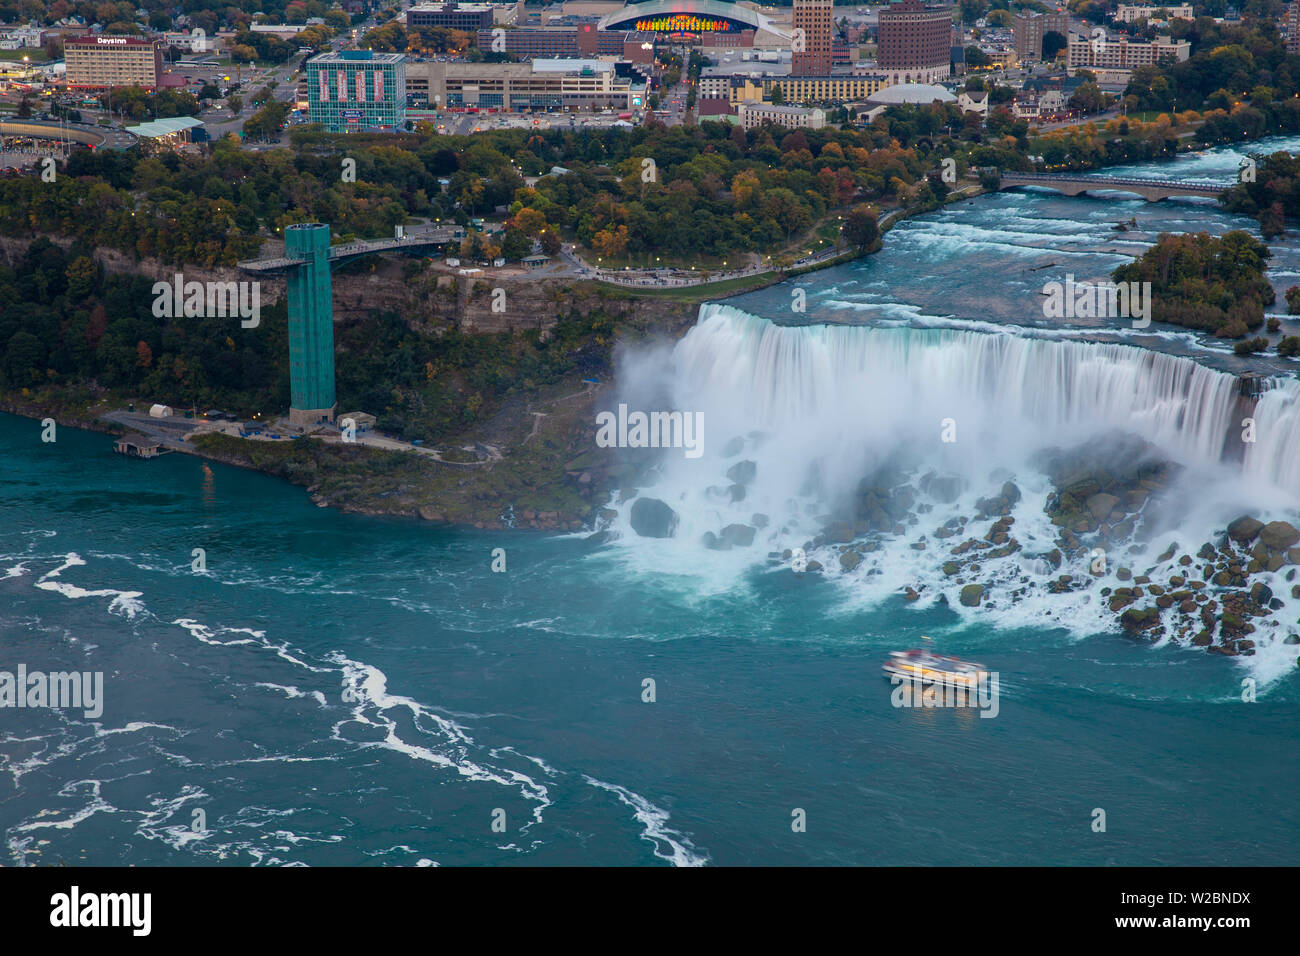 Canada And Usa Ontario And New York State Niagara Niagara